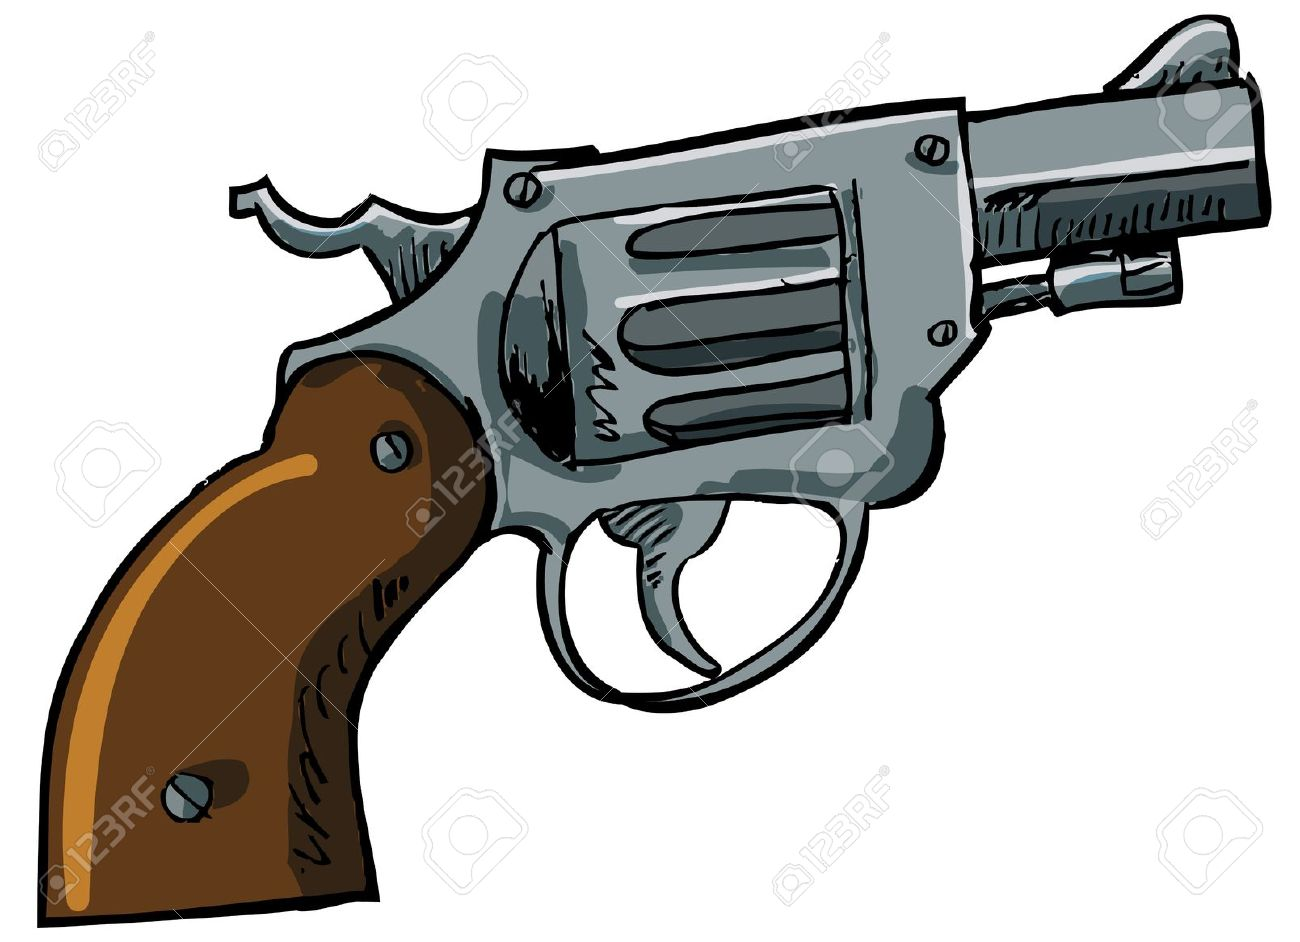 Illustration Of A Snub Nose Revolver. Isolated On White Royalty.